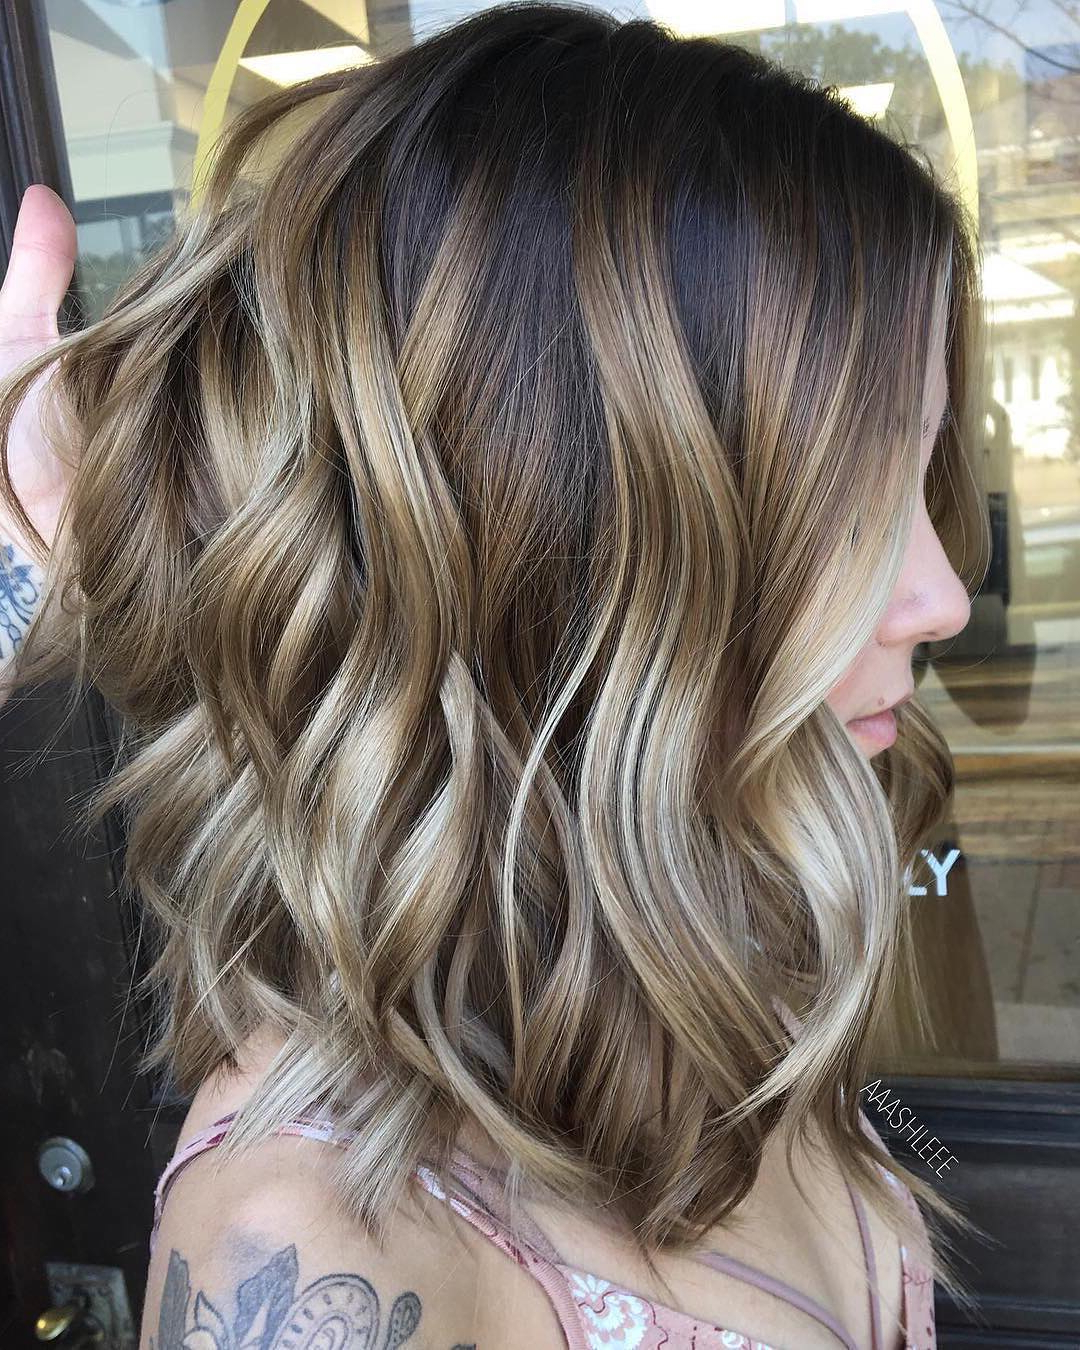 10 Ombre Balayage Hairstyles For Medium Length Hair, Hair Color 2019 With Trendy Two Tier Caramel Blonde Lob Hairstyles (View 7 of 20)